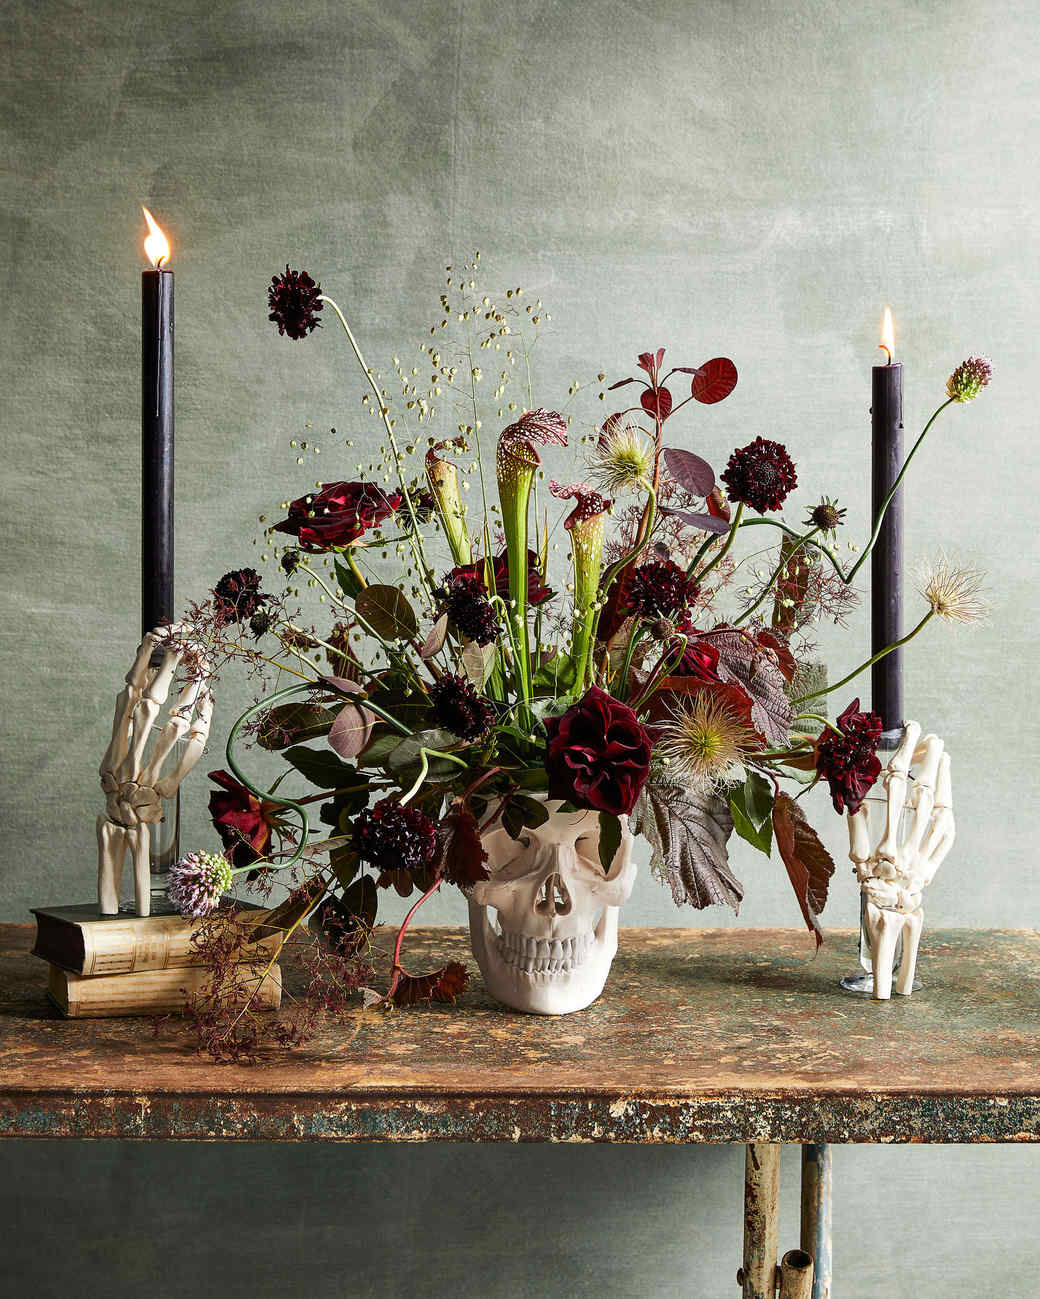 Florals and Skulls in a Centerpiece